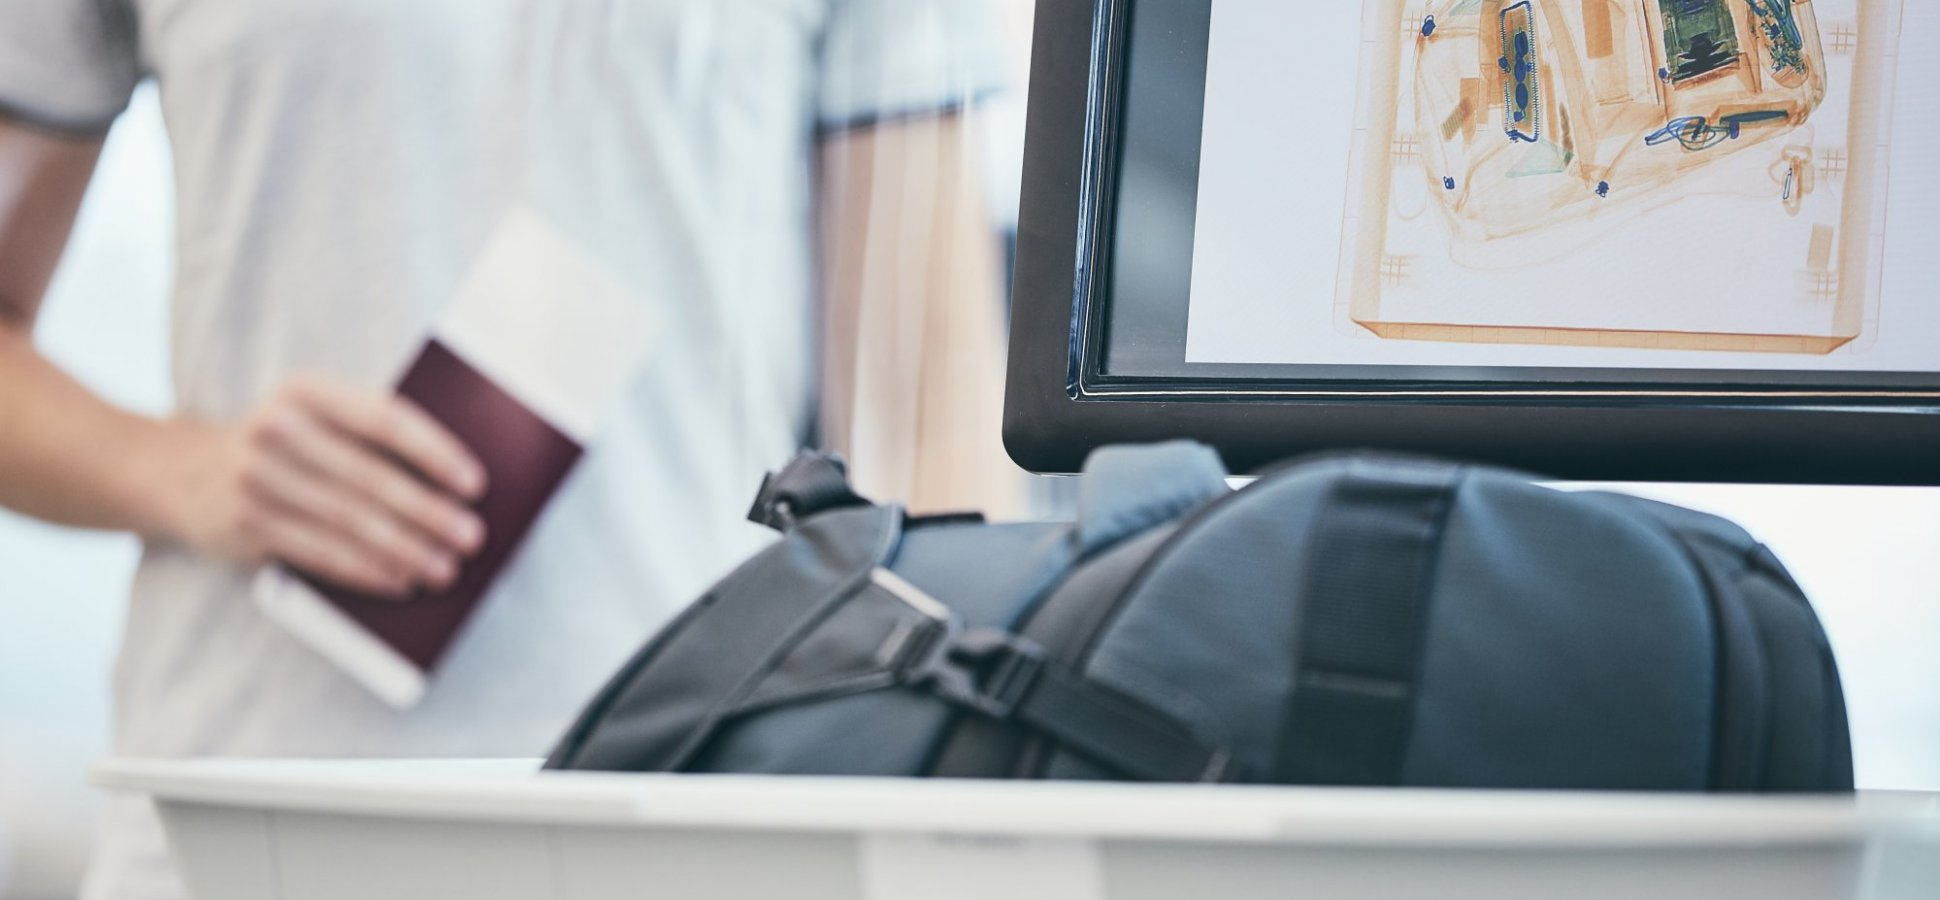 8 Airport Security Mistakes Every Business Traveler Should Avoid